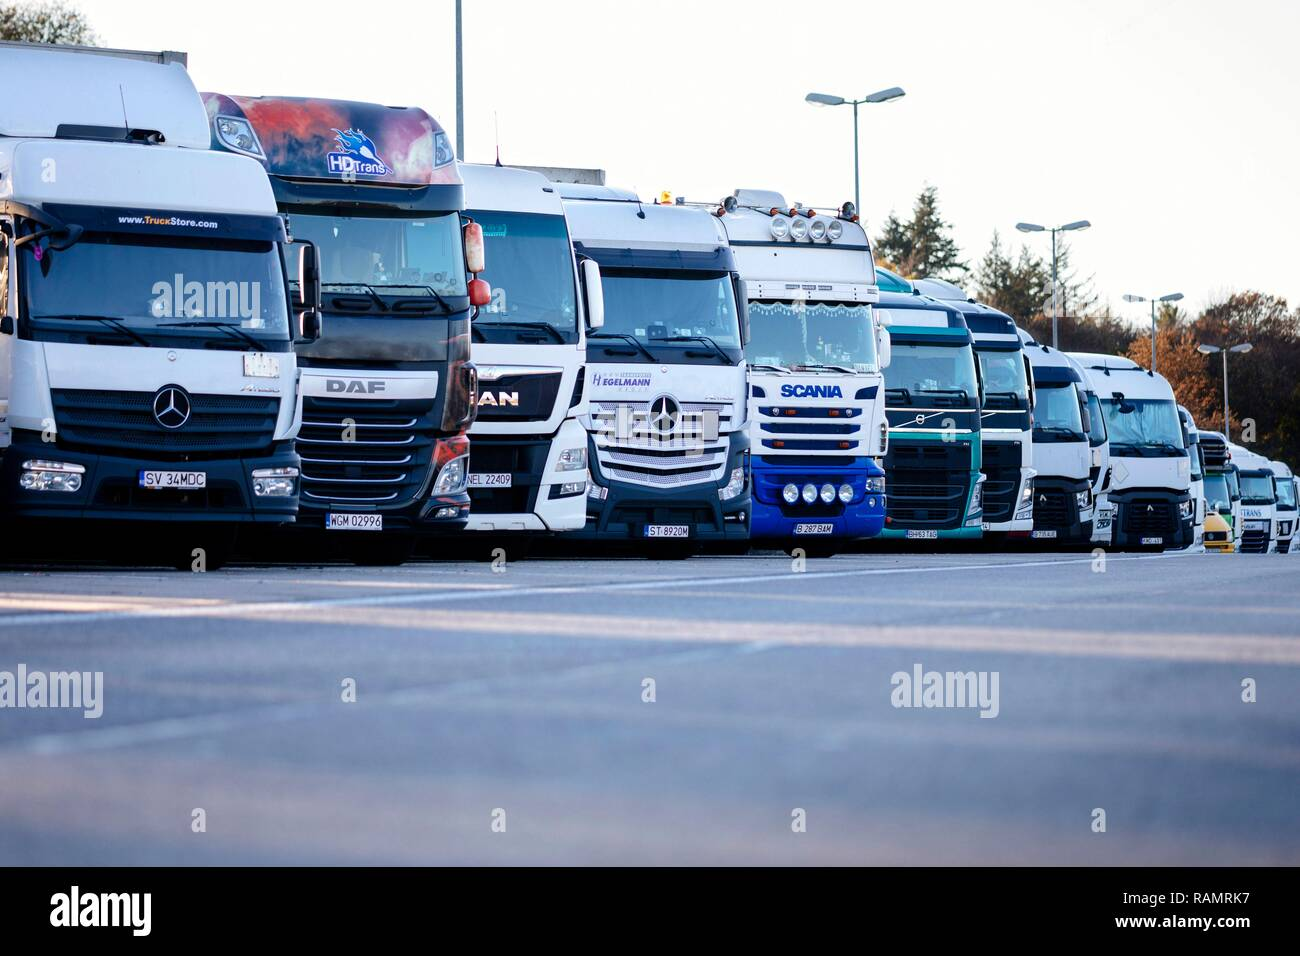 International Trucks Stock Photos & International Trucks